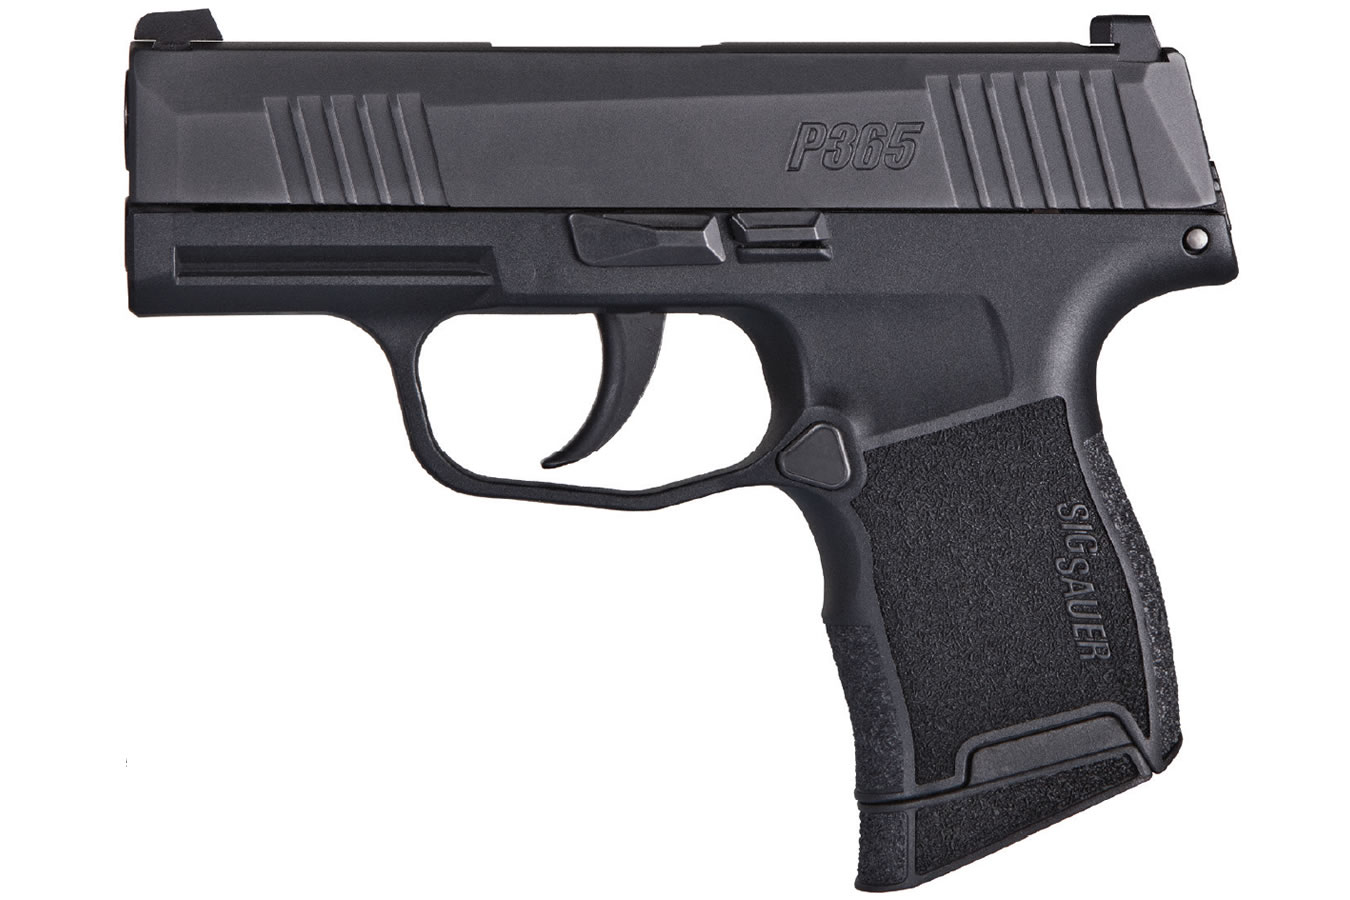 9mm p365 sig pistol compact sauer fired micro striker outdoor superstore sportsman bss condition number